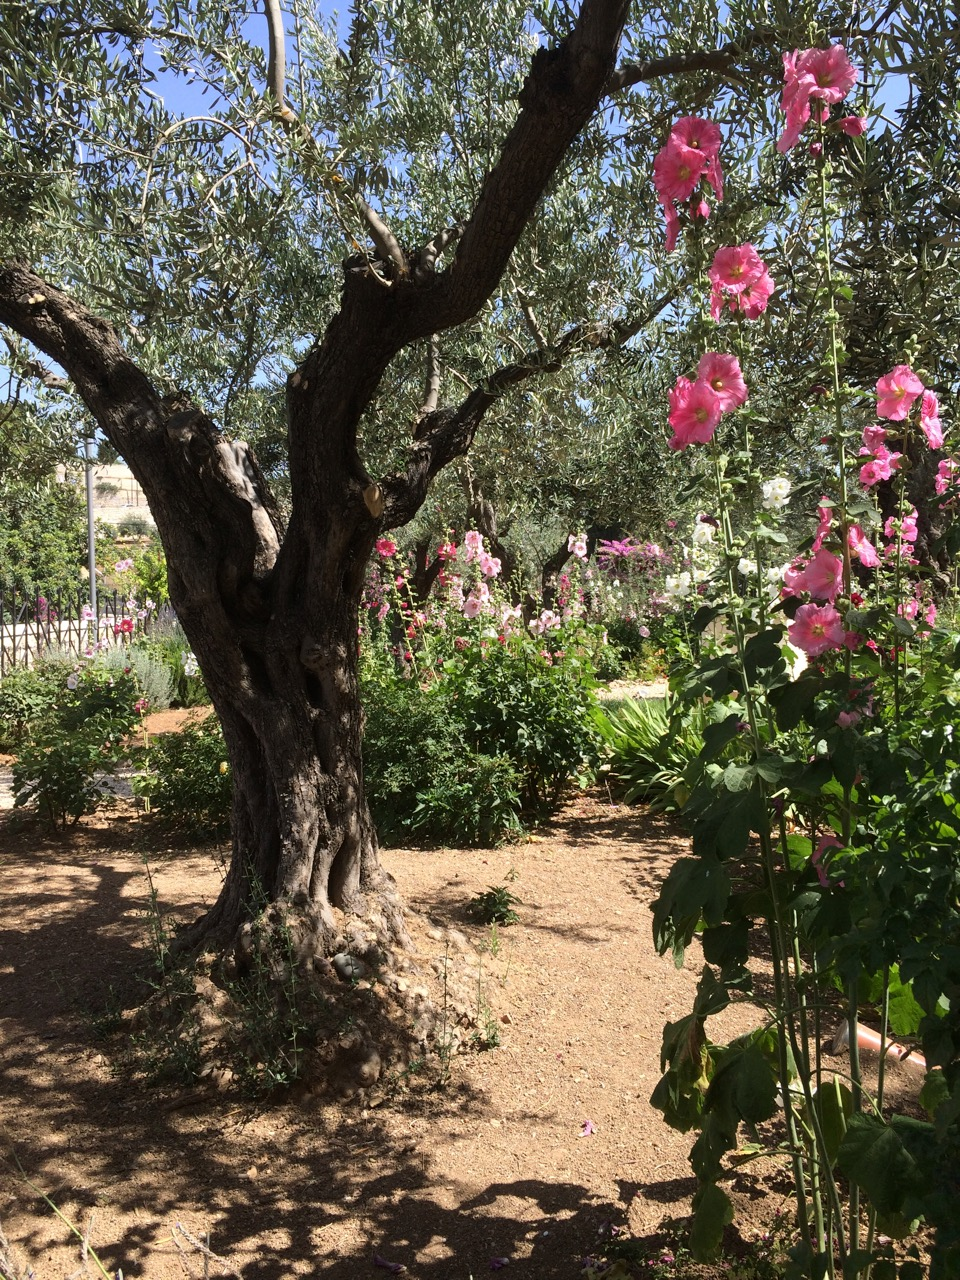 The Garden of Gethsemane